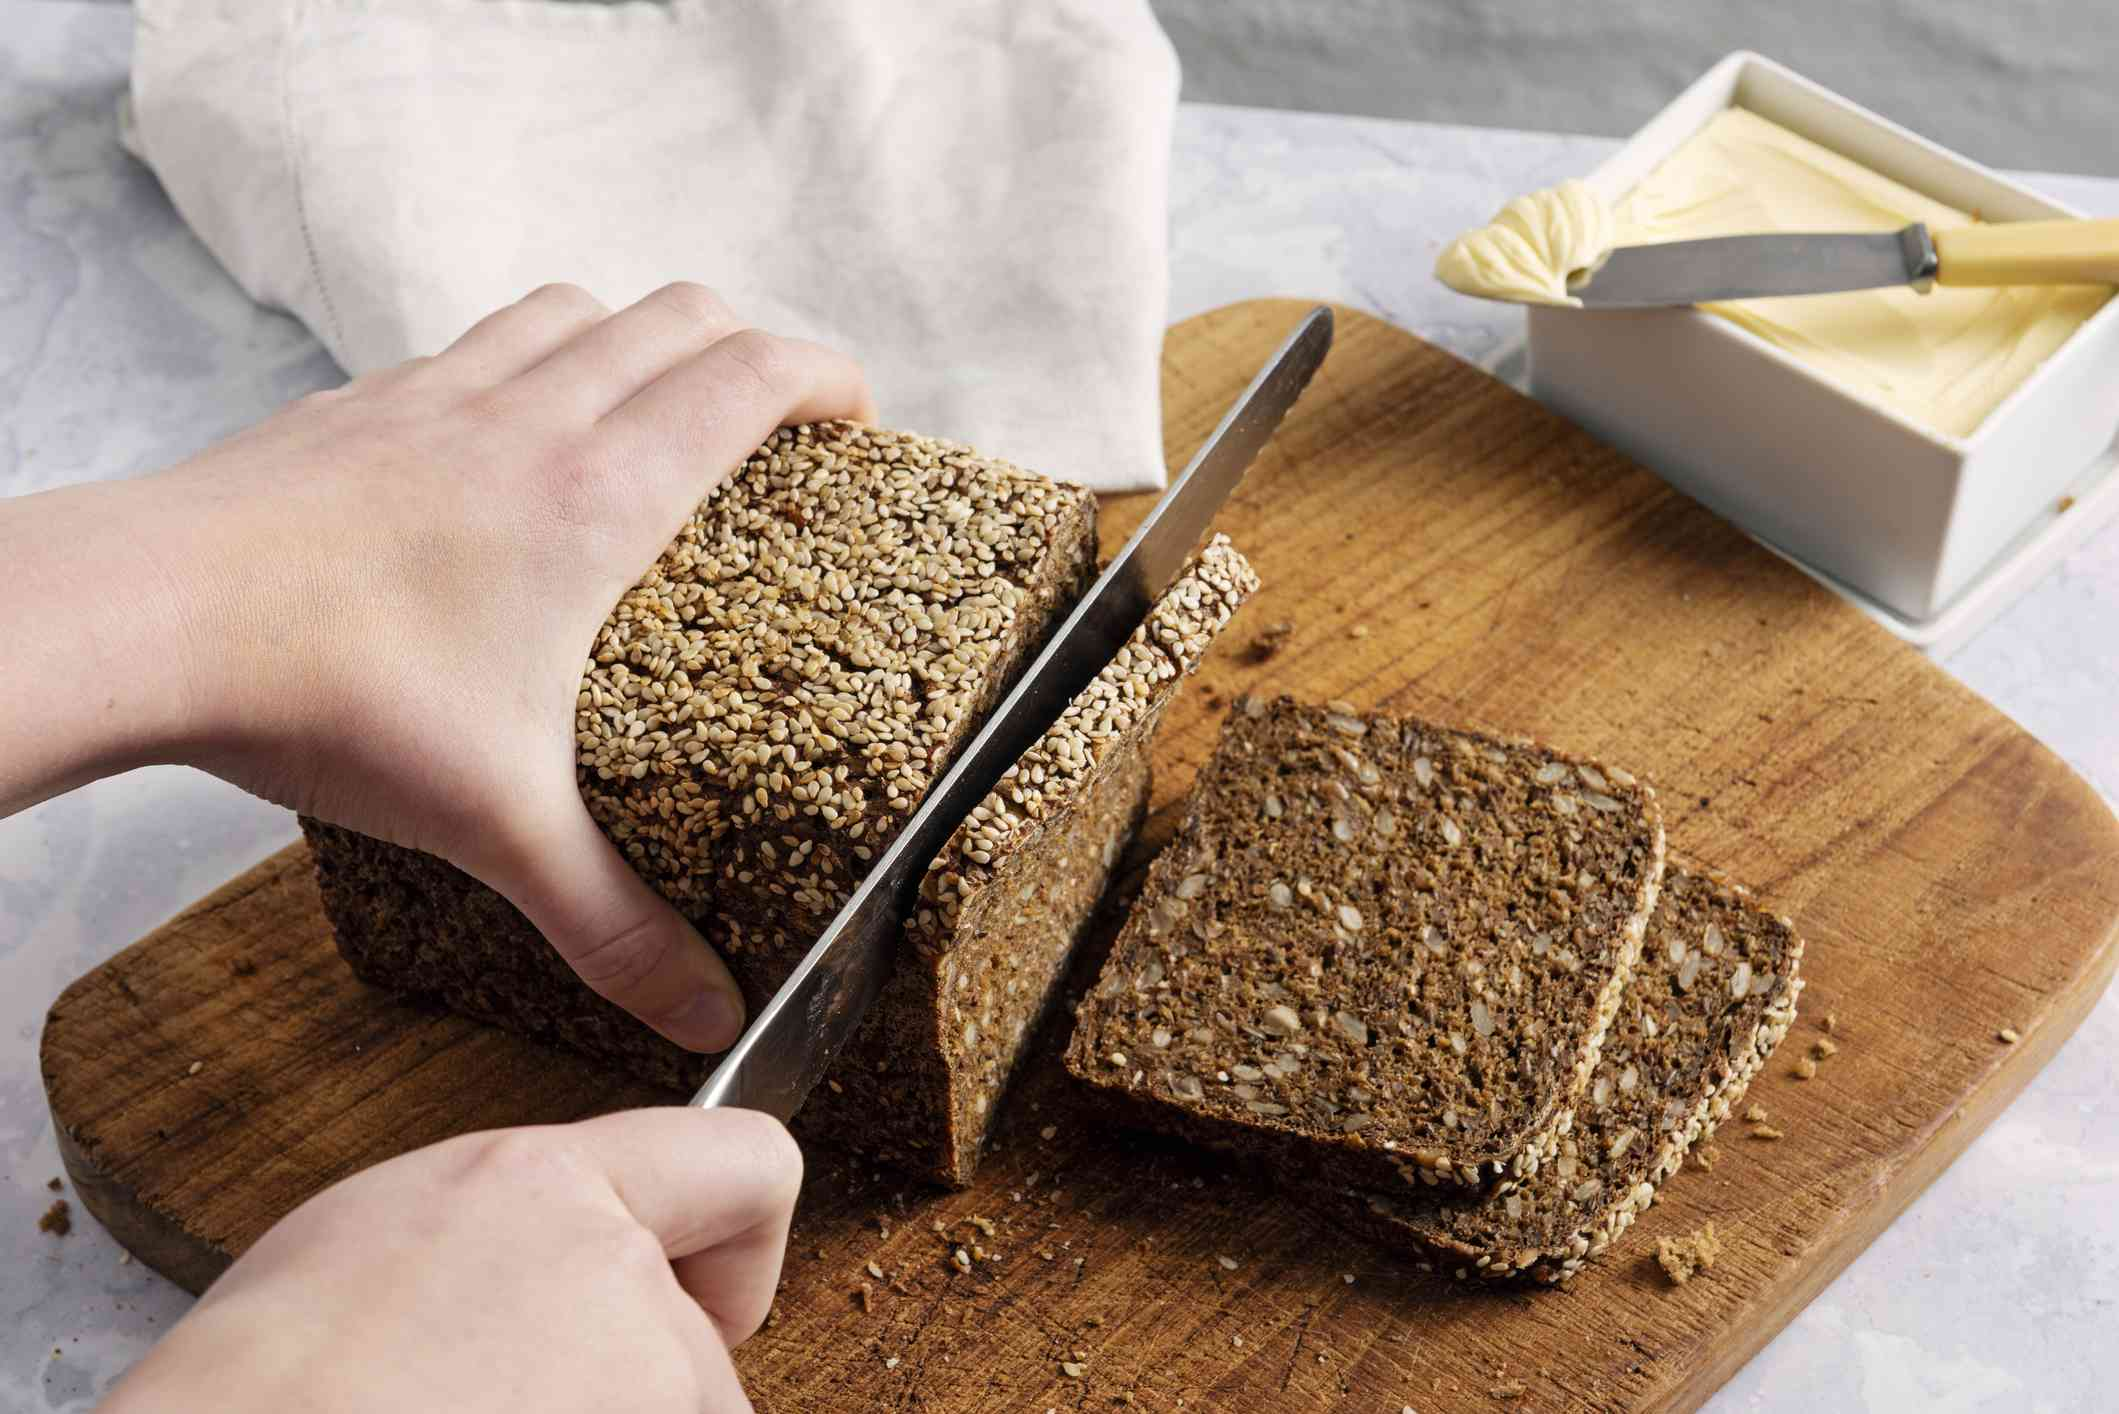 Person cutting a loaf of rye bread into slices